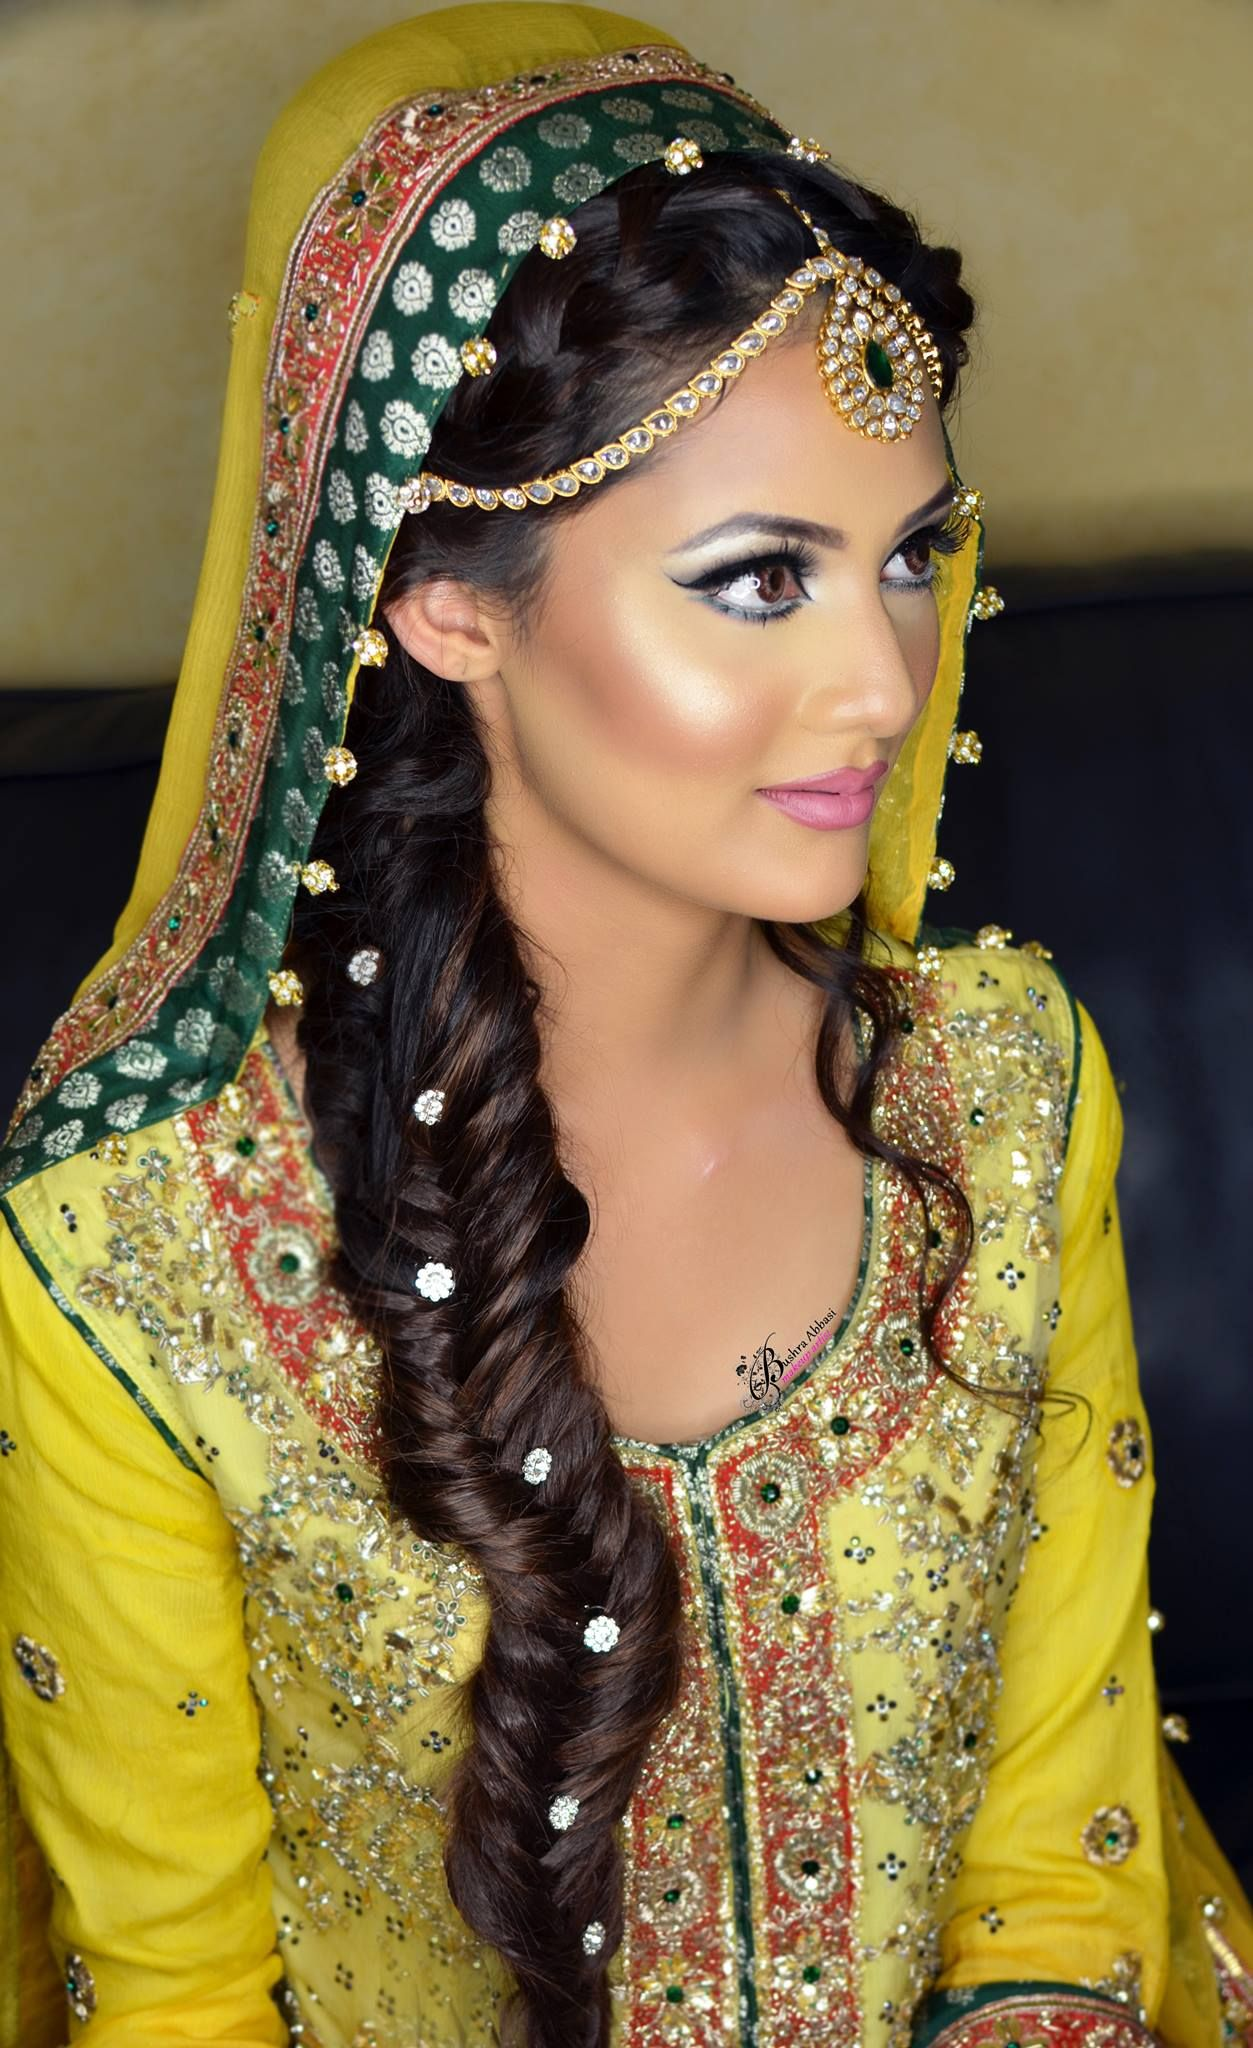 Gorgeous Mehndi Bride, Makeup By Bushra Abbasi